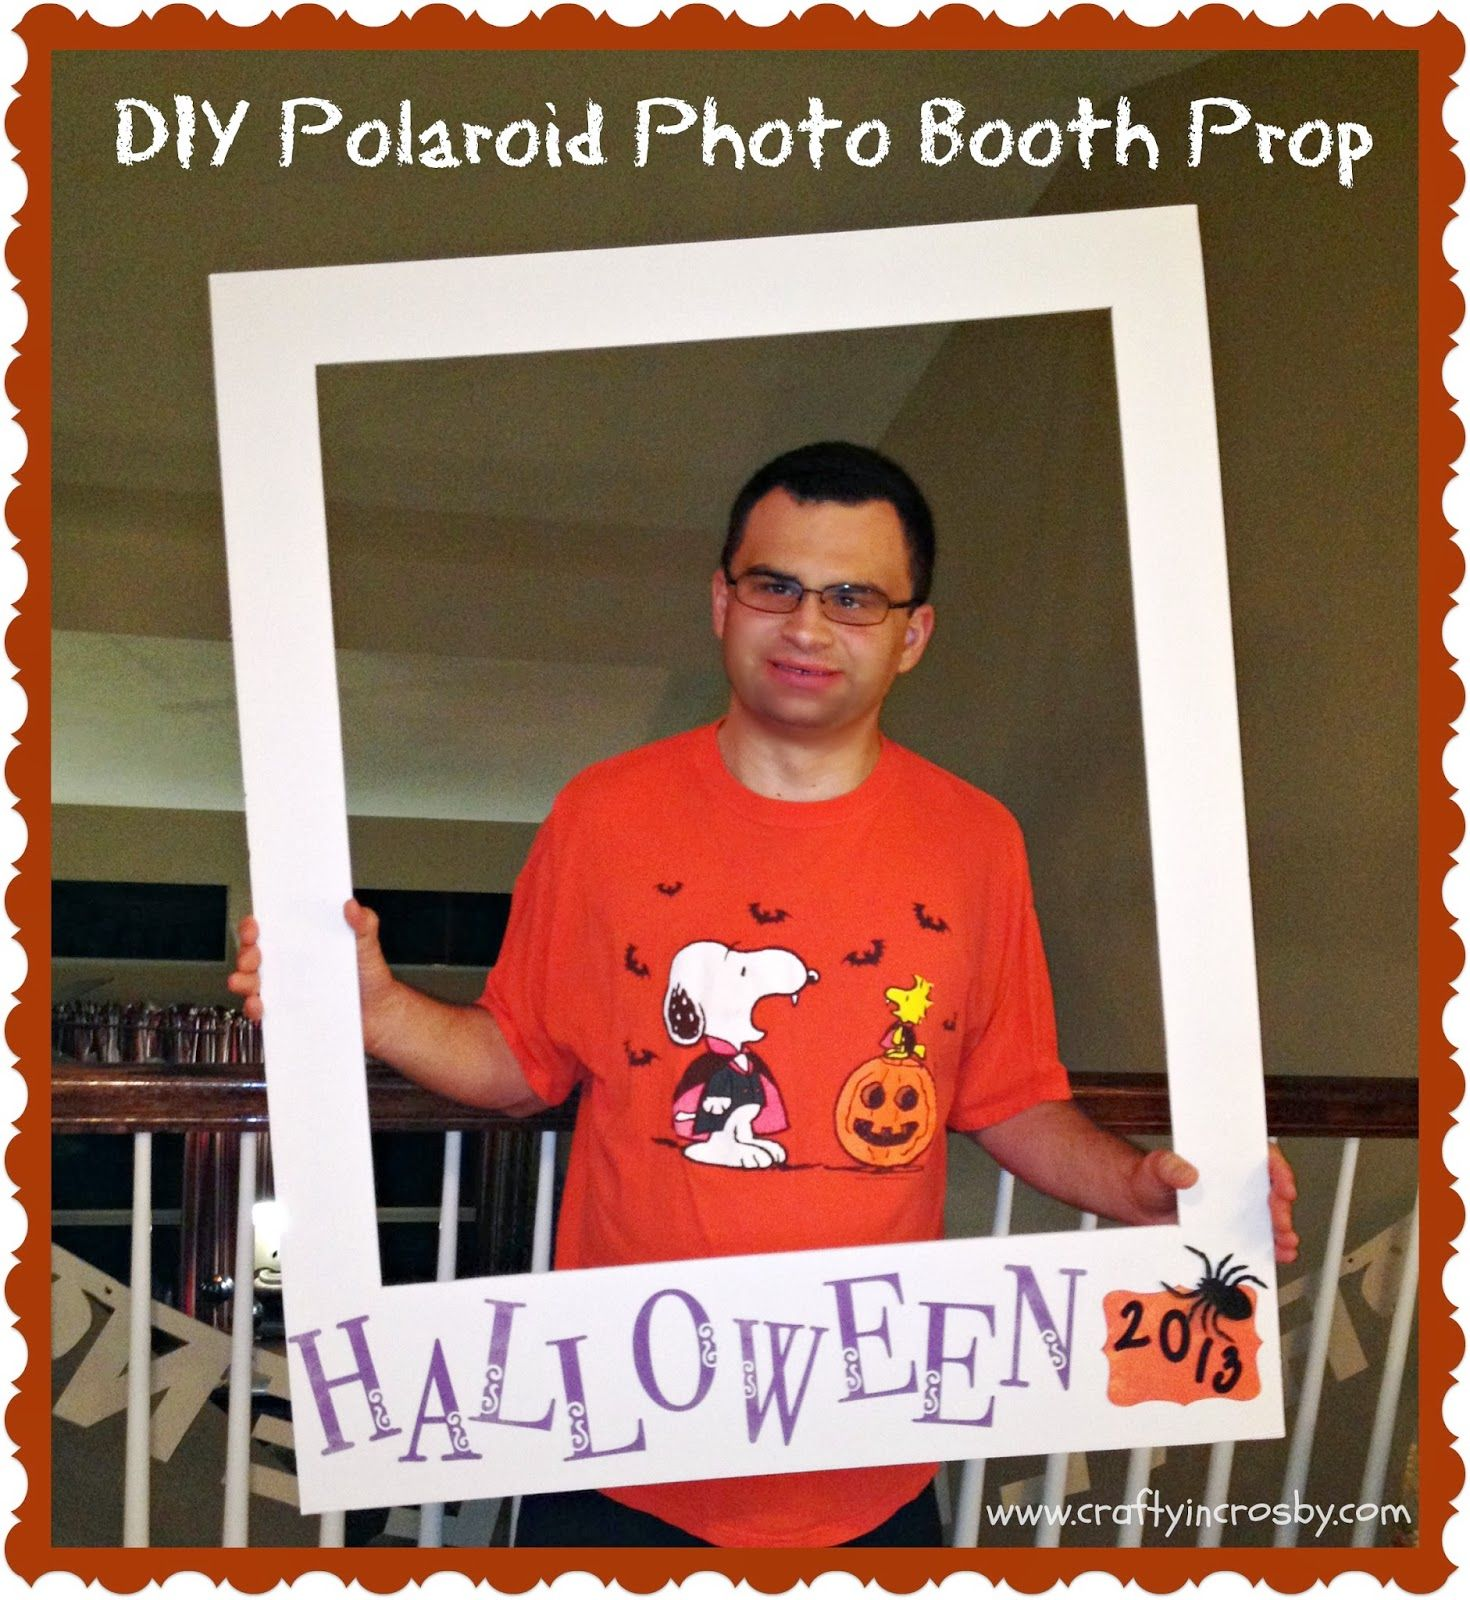 Make your own giant polaroid frame polaroid photo booth wedding diy polaroid photo booth prop finally instructions on how to make a picture frame solutioingenieria Image collections